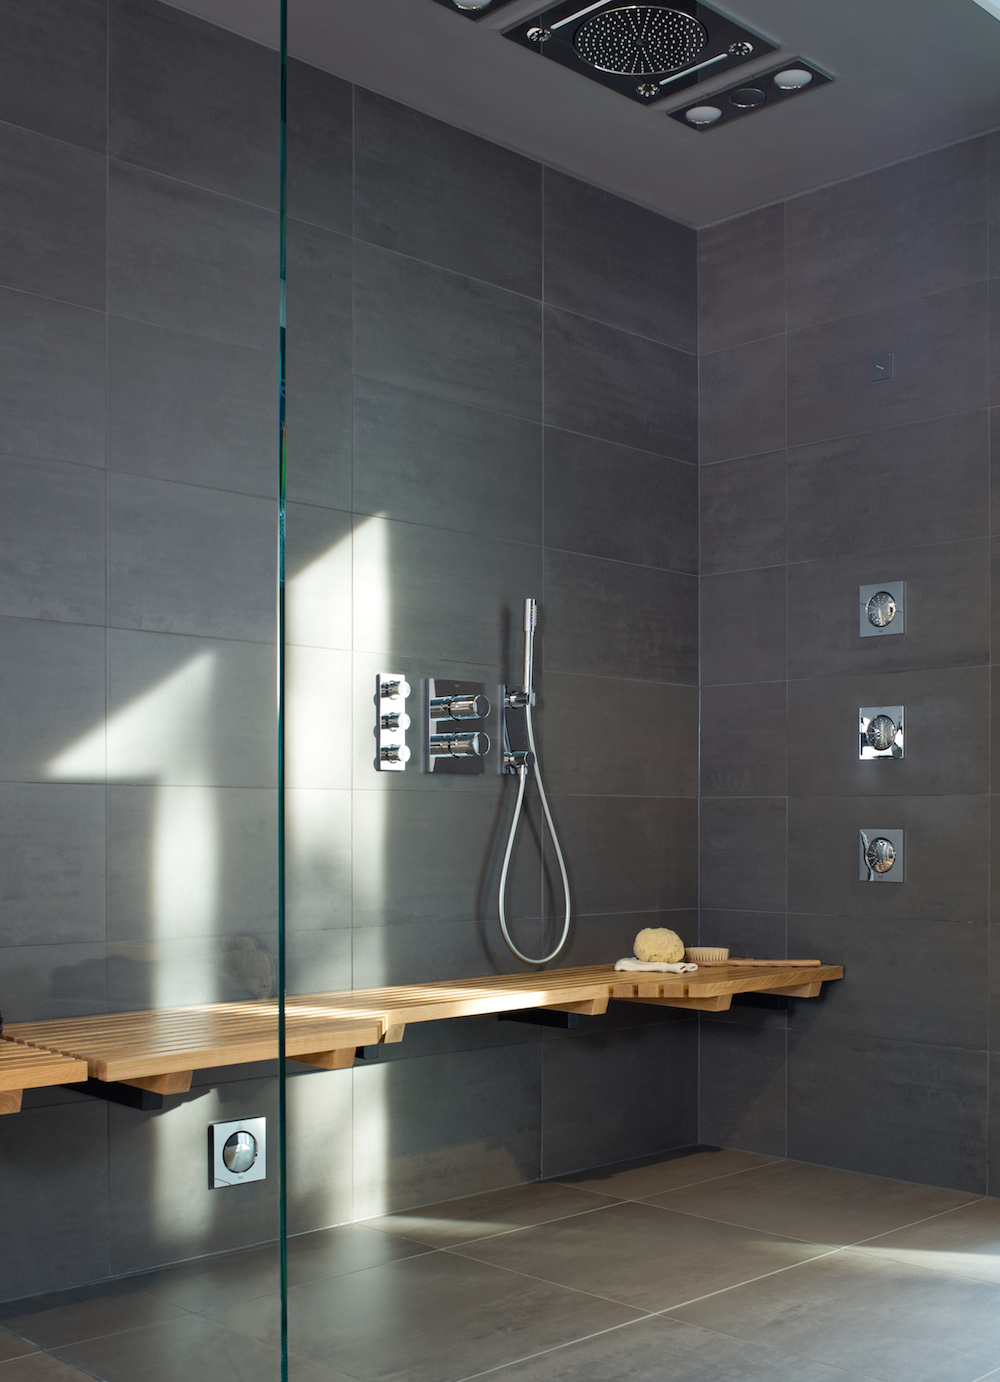 Image caption: GROHE F-Digital Deluxe